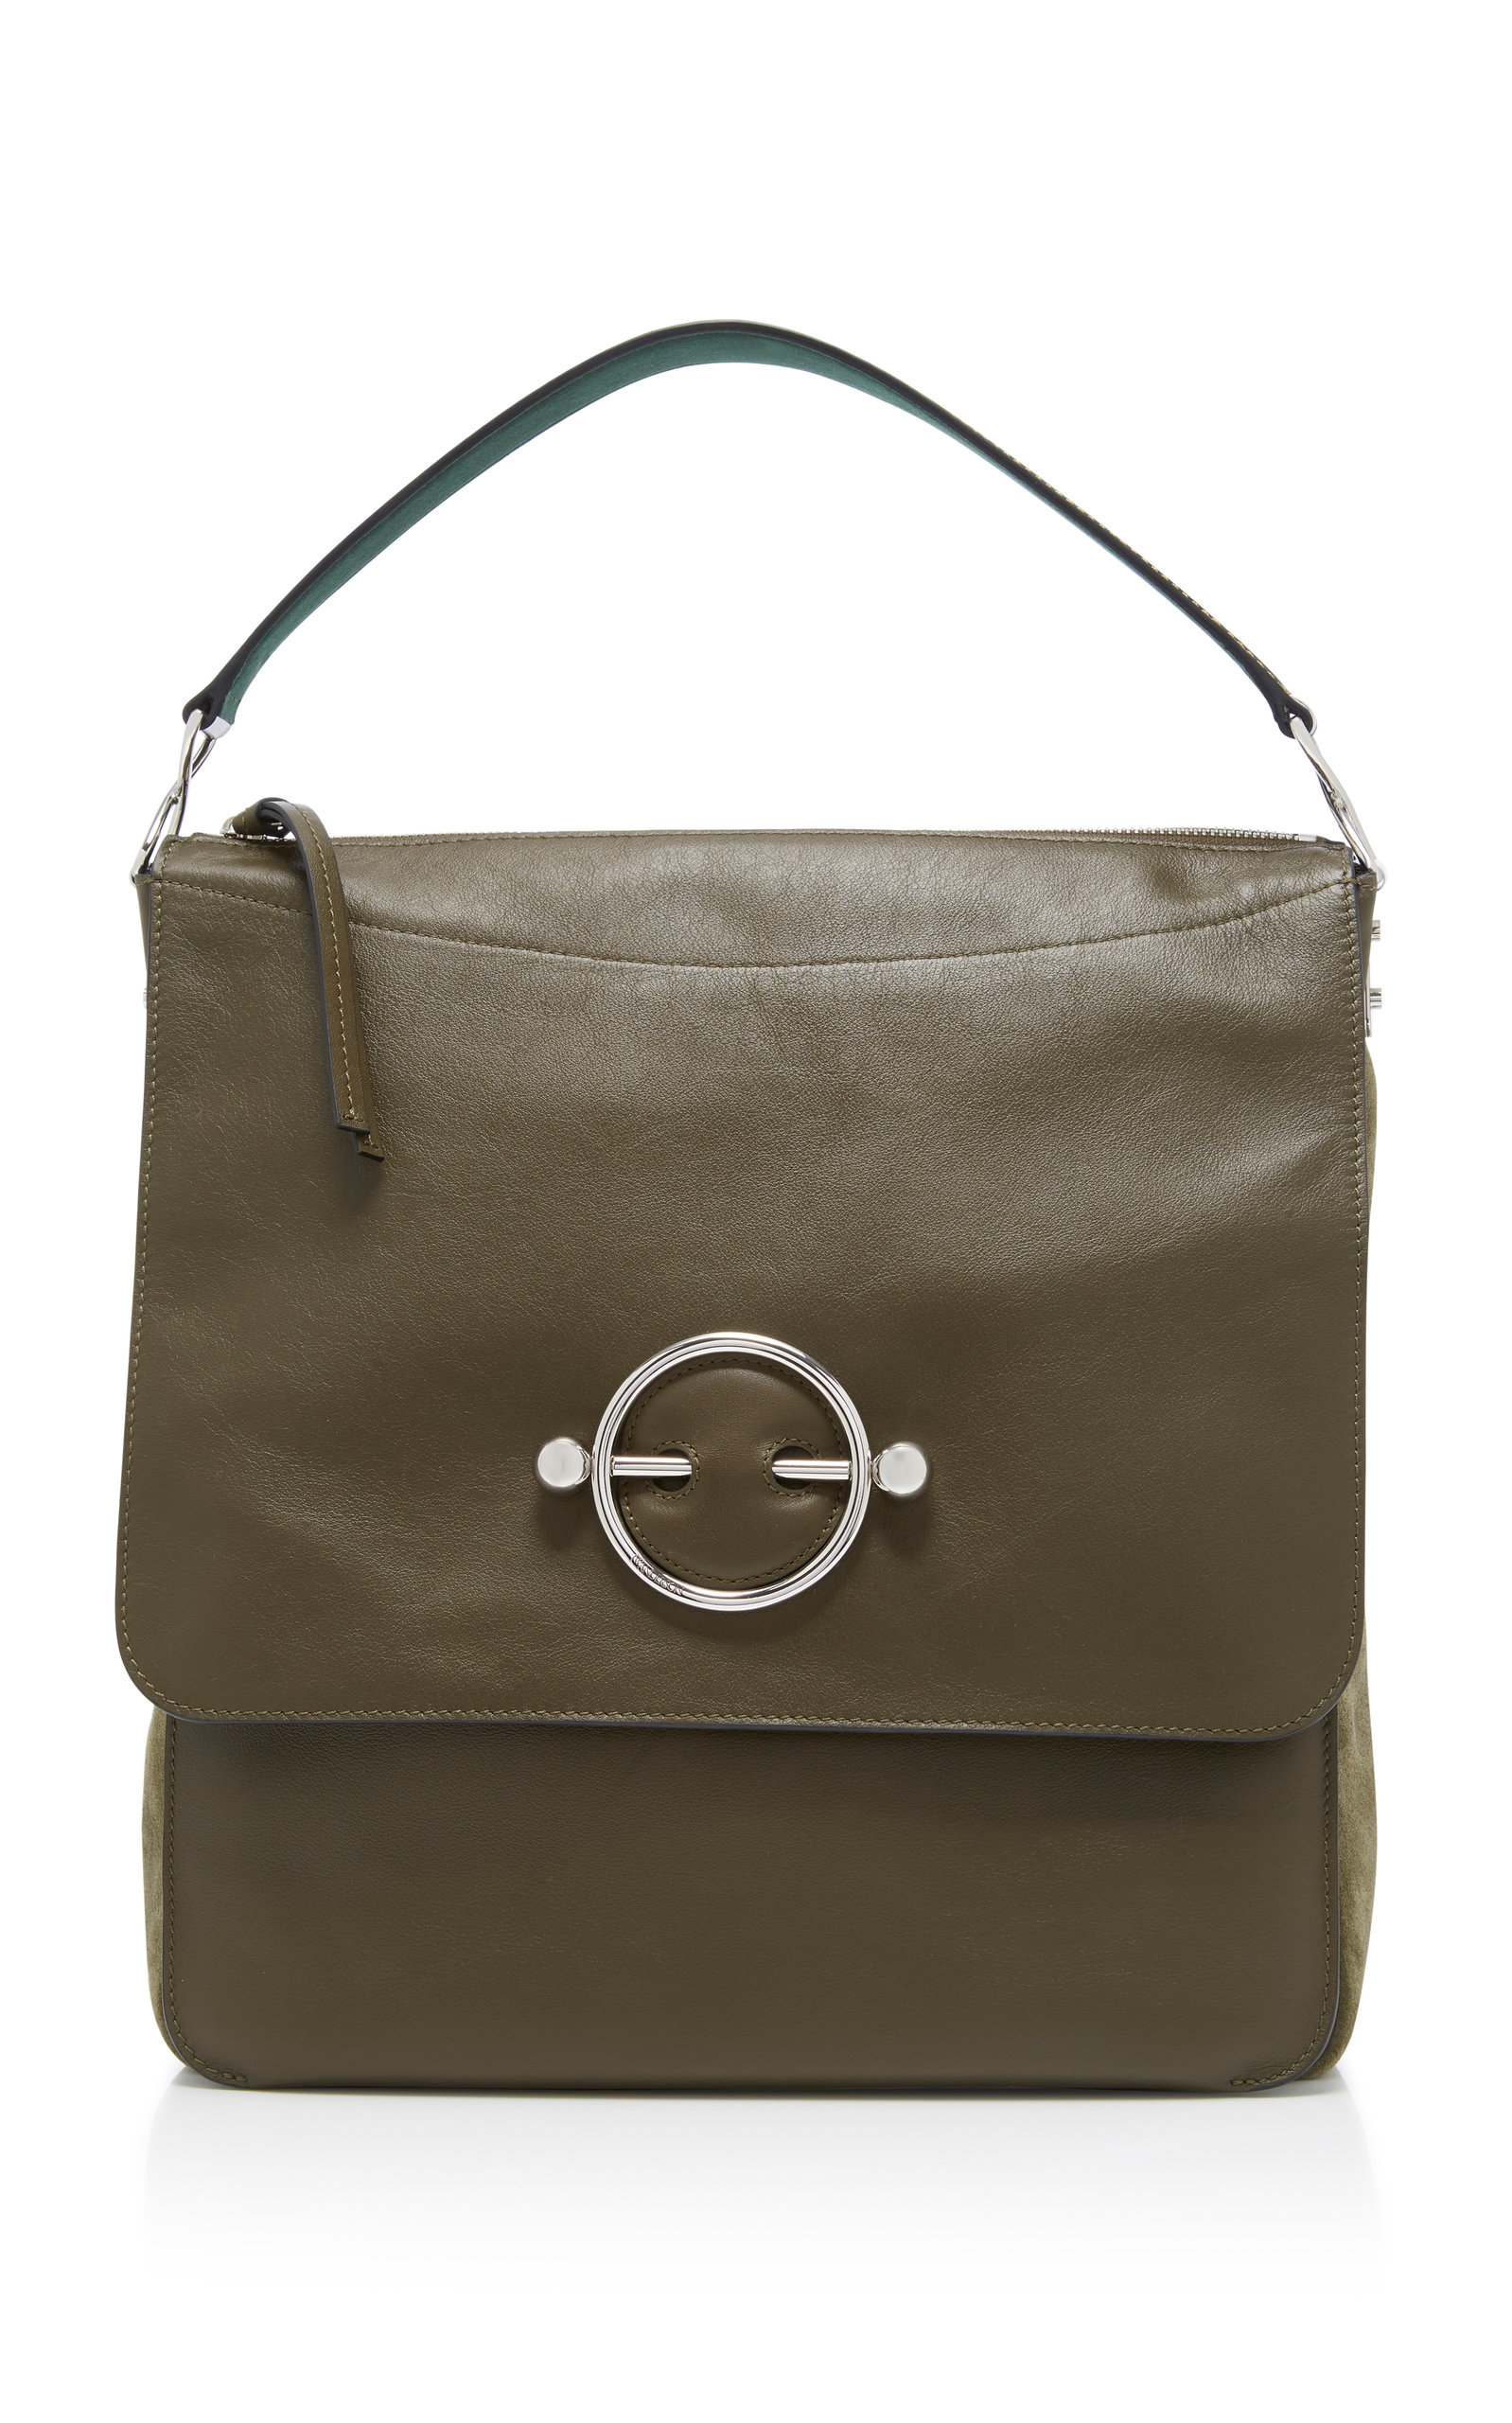 J.w.anderson DISC LEATHER HOBO BAG